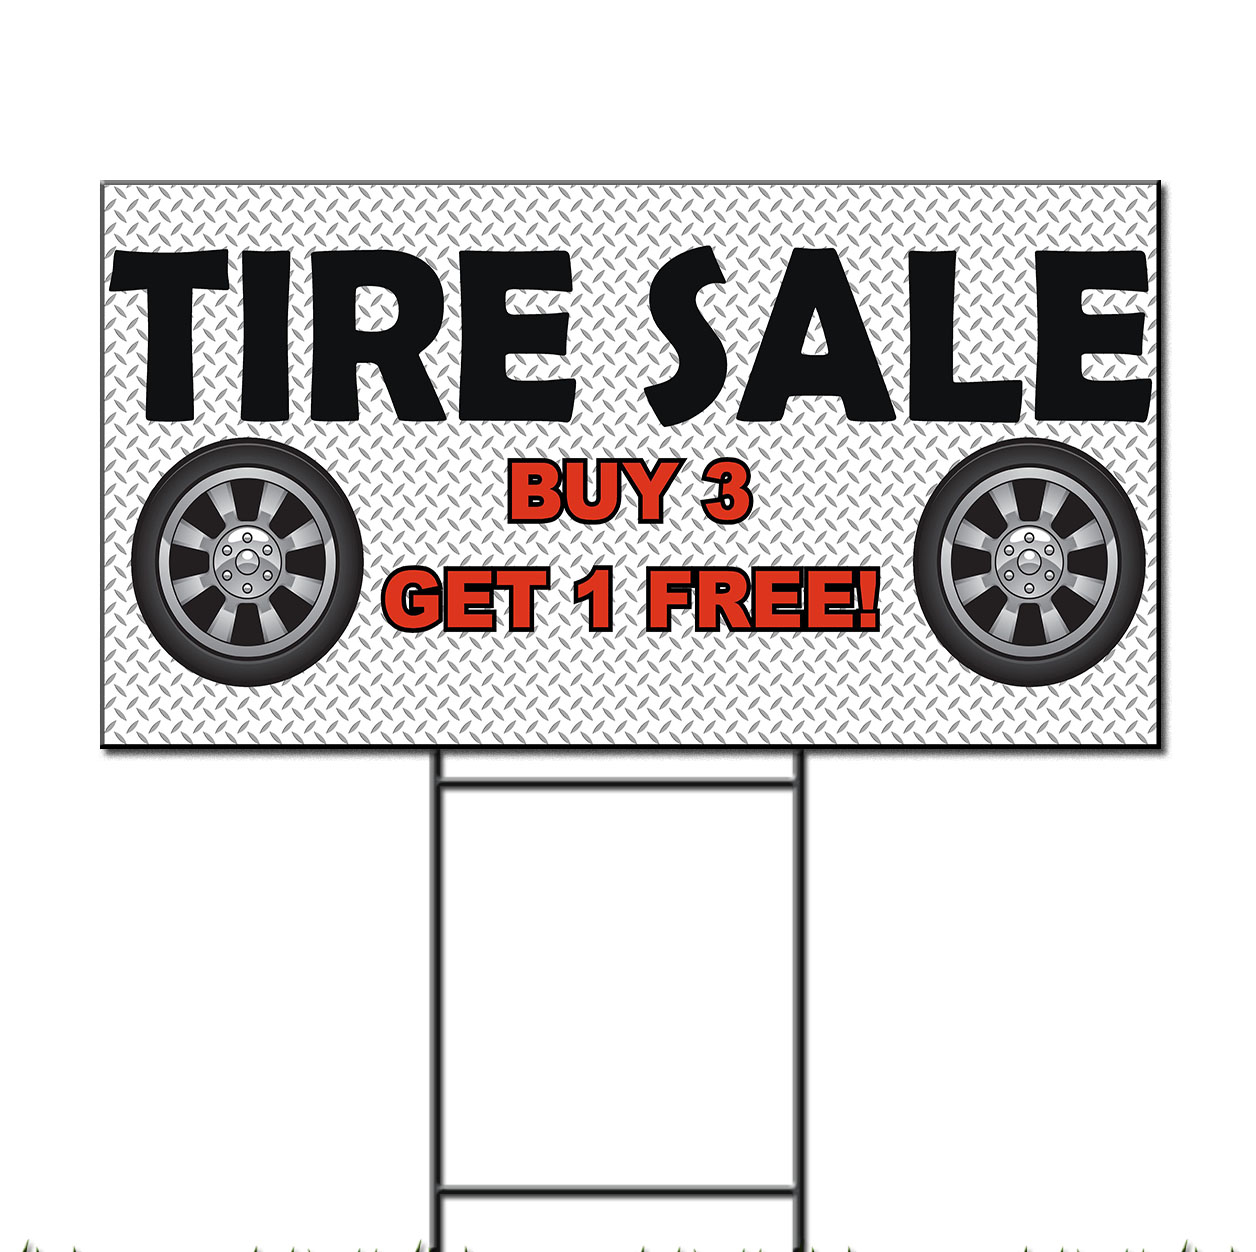 tire sale buy 3 get 1 free custom message plastic yard sign free stakes ebay. Black Bedroom Furniture Sets. Home Design Ideas